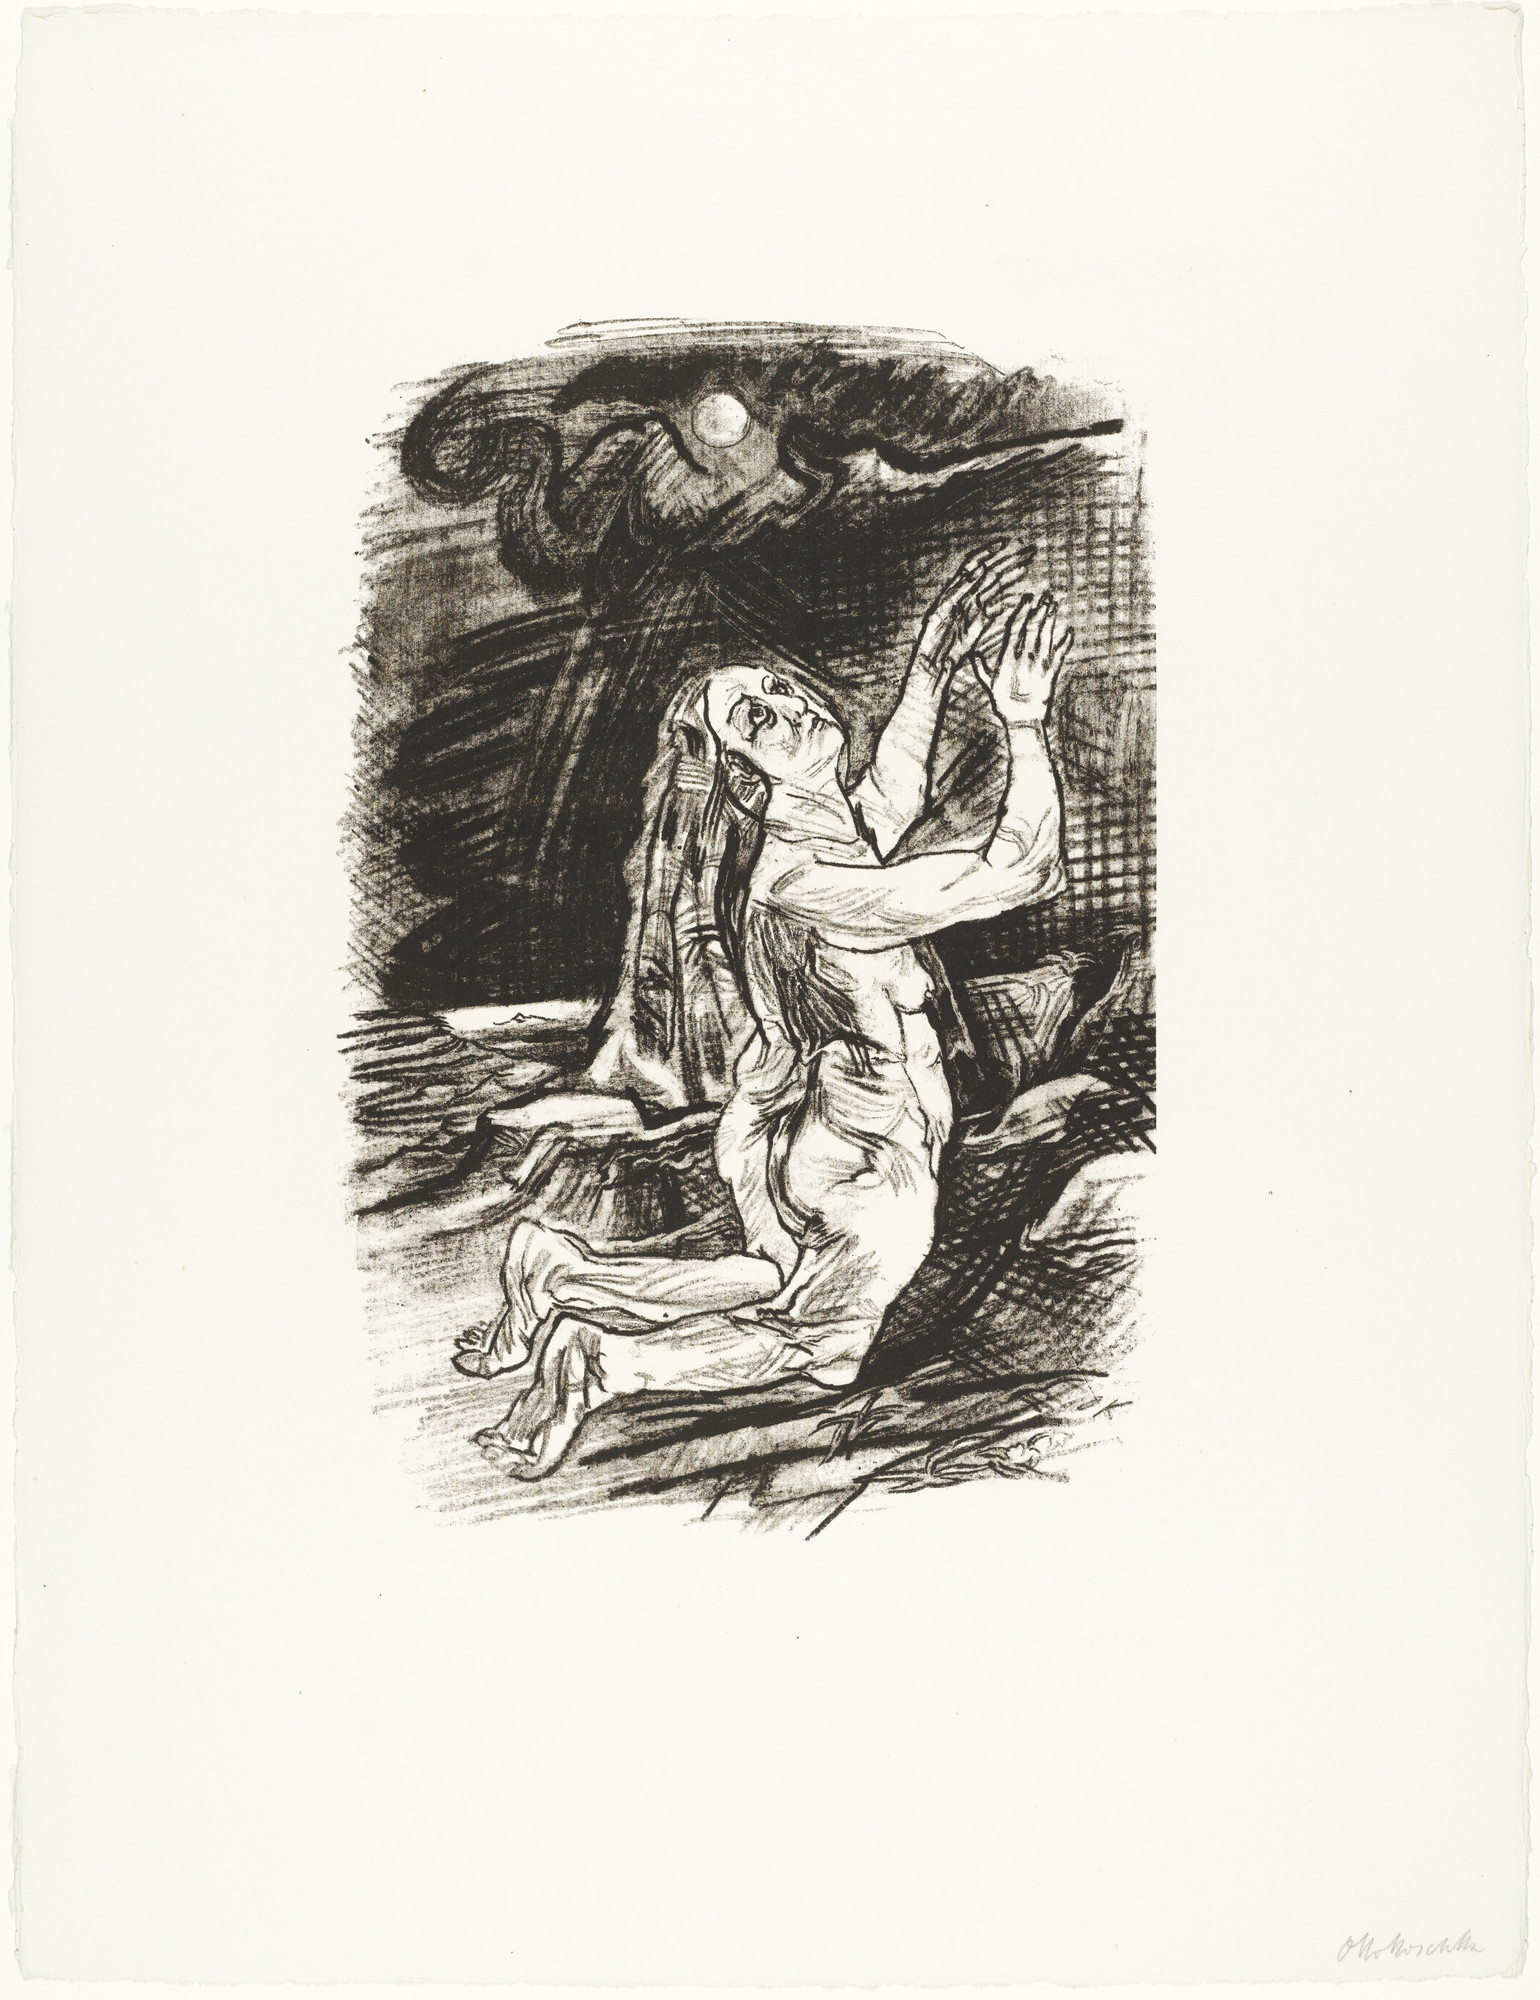 Oskar Kokoschka. The Supplicant (Die Flehende) (plate 5) from O Eternity - Thou Word of Thunder (Bach Cantata) [O Ewigkeit - Du Donnerwort (Bachkantate)]. (1914, published 1916)